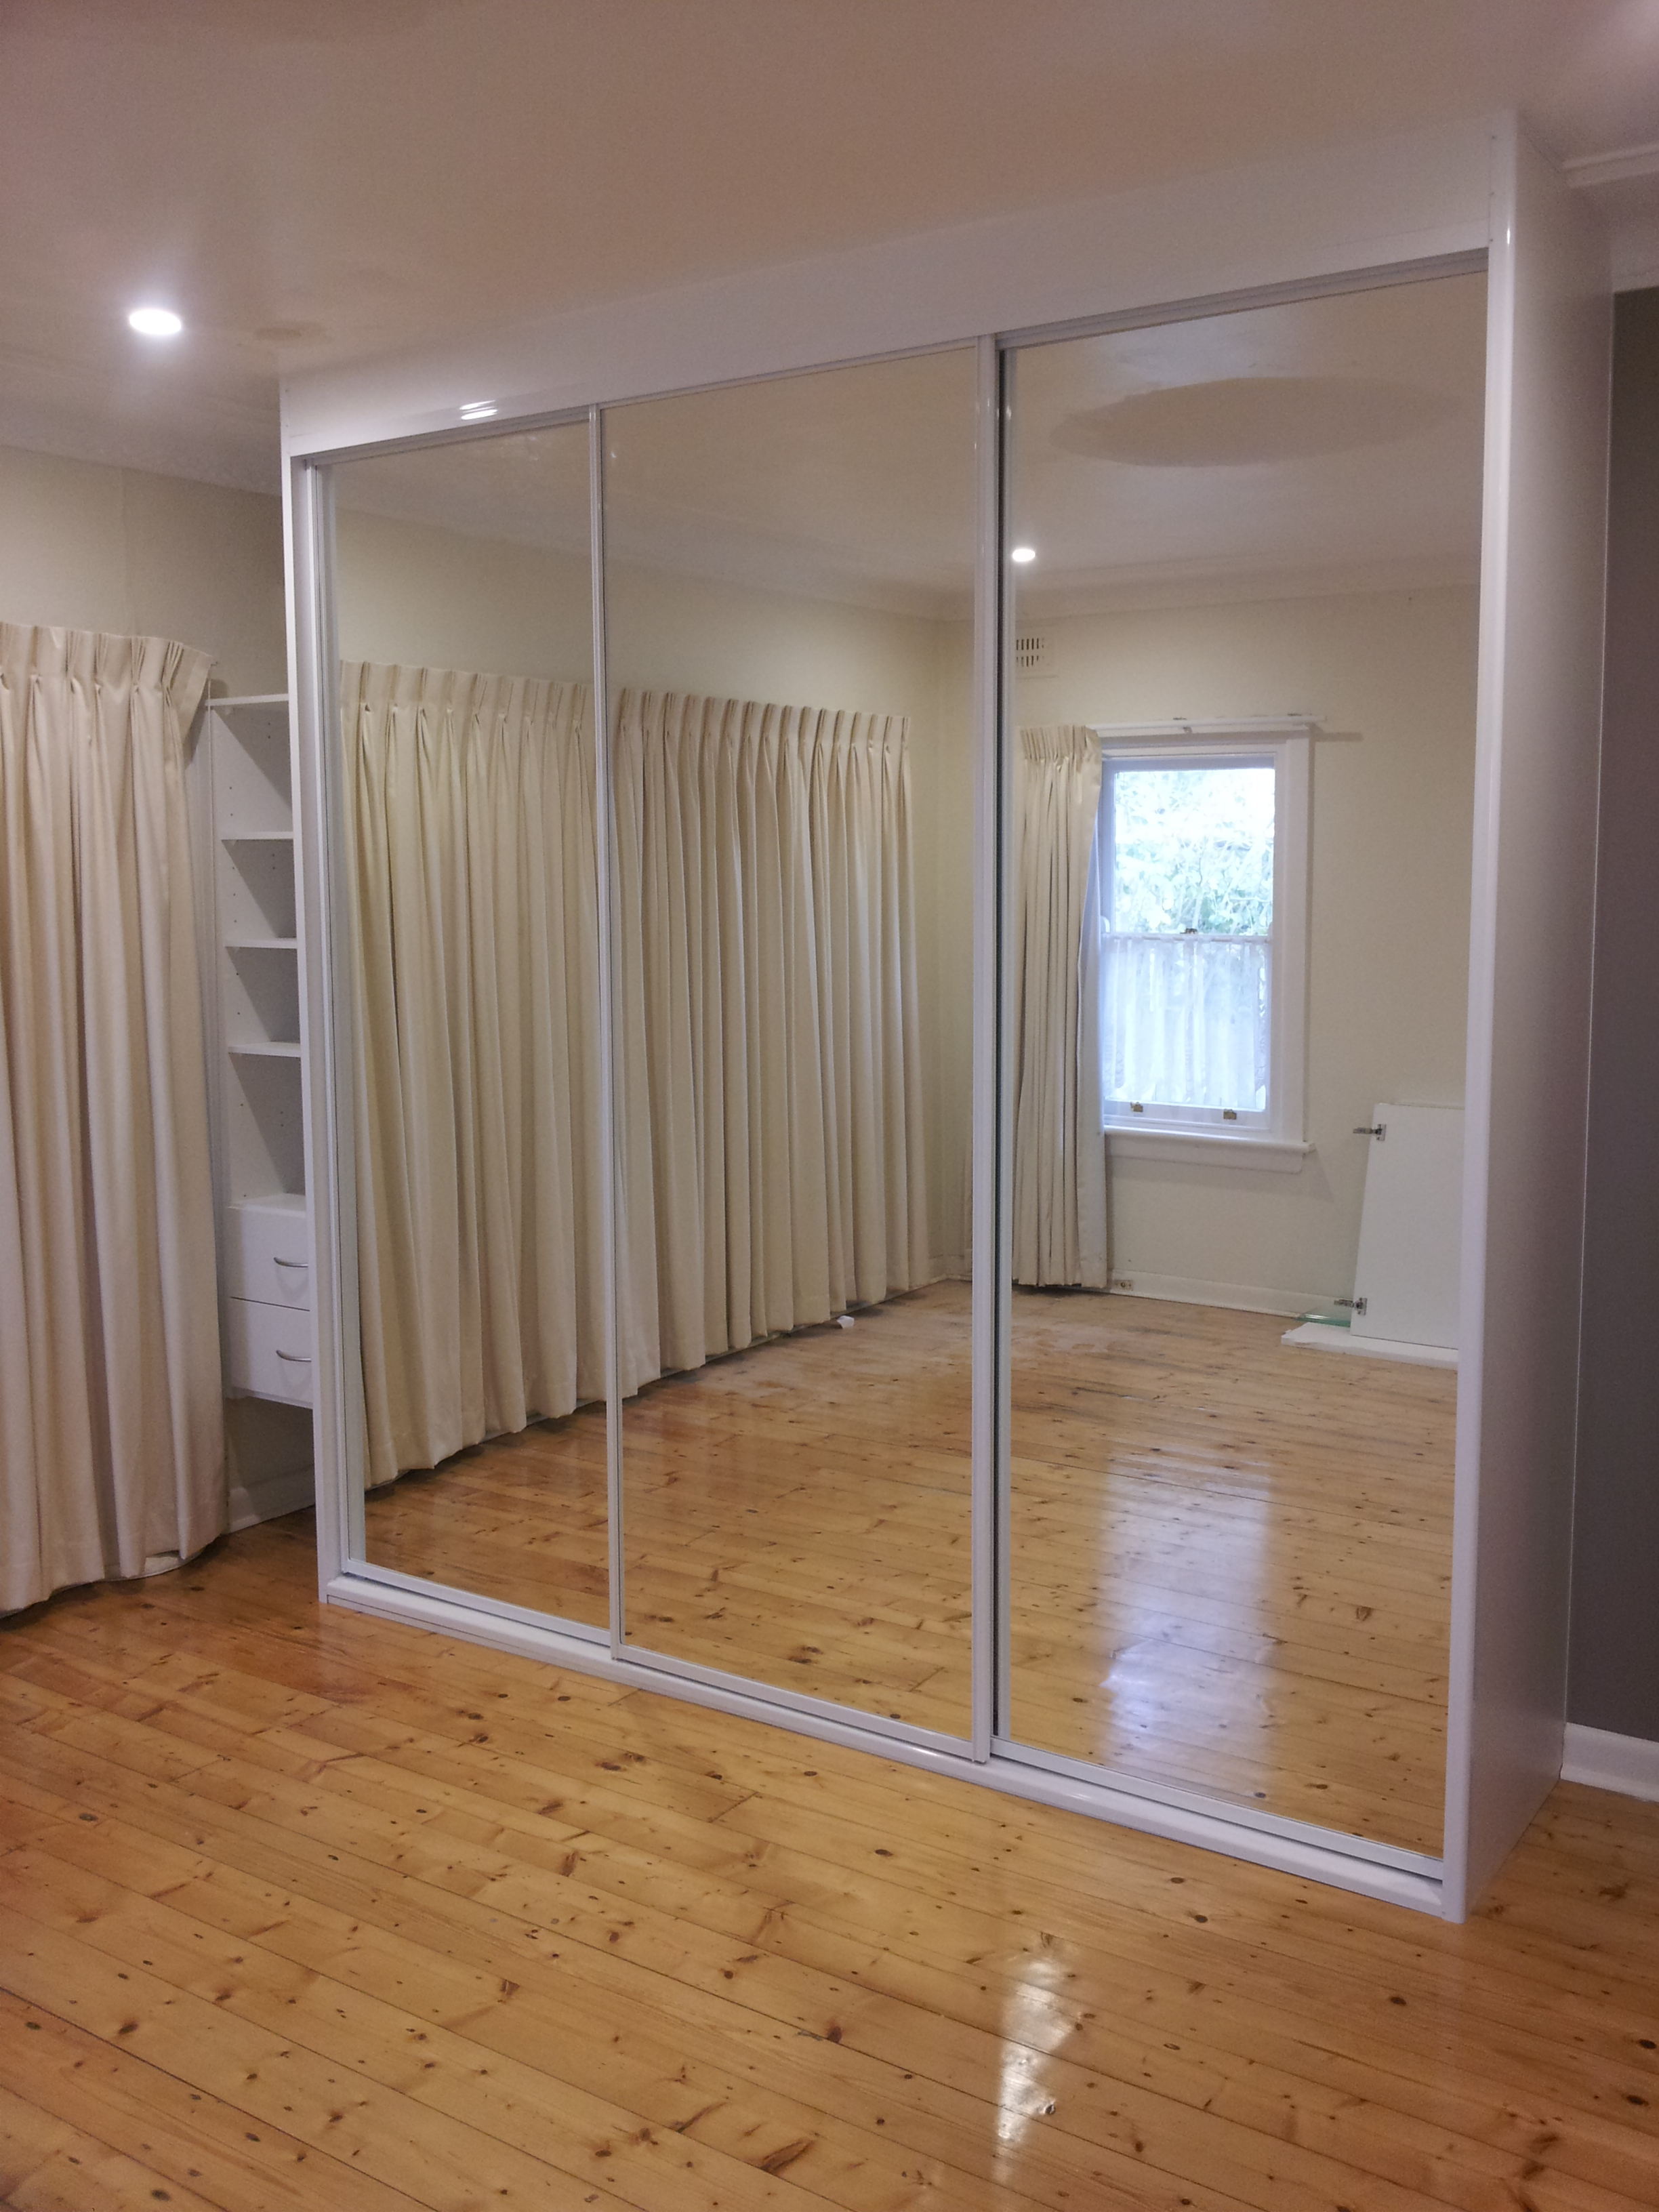 2 Framed Mirror Doors